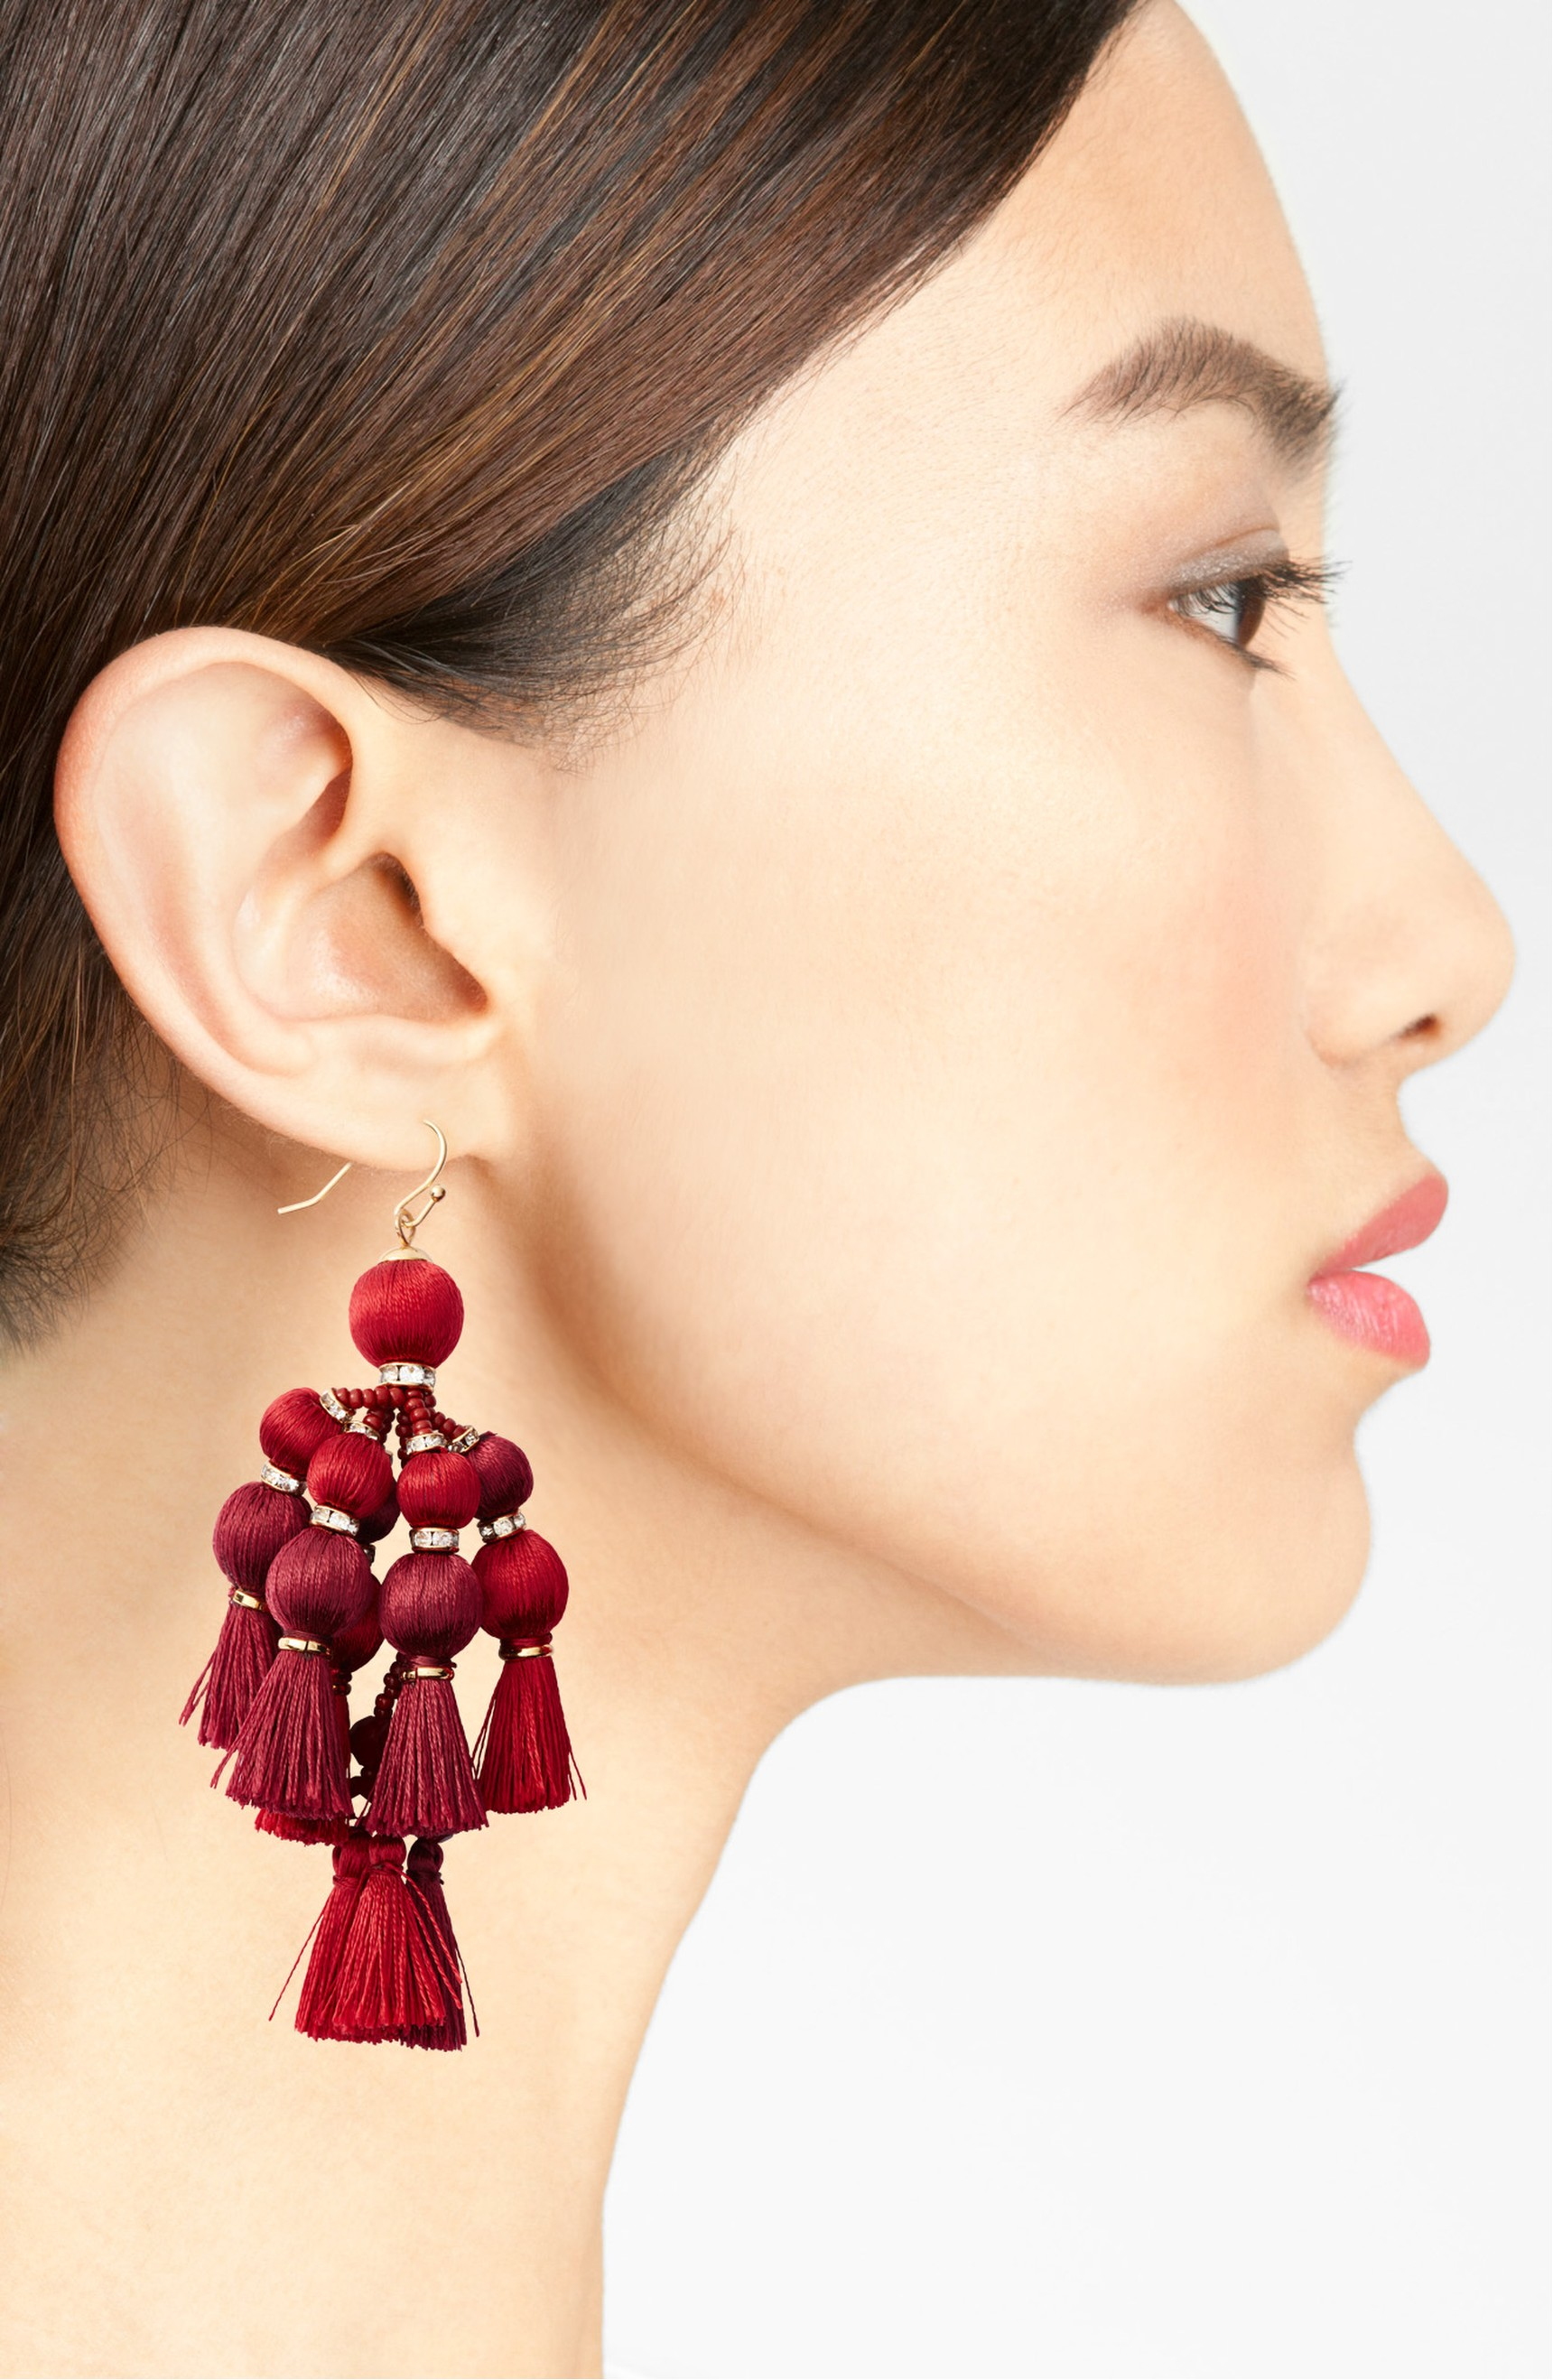 studs york sparklers dainty bow spade jewellery new earrings en kate gb